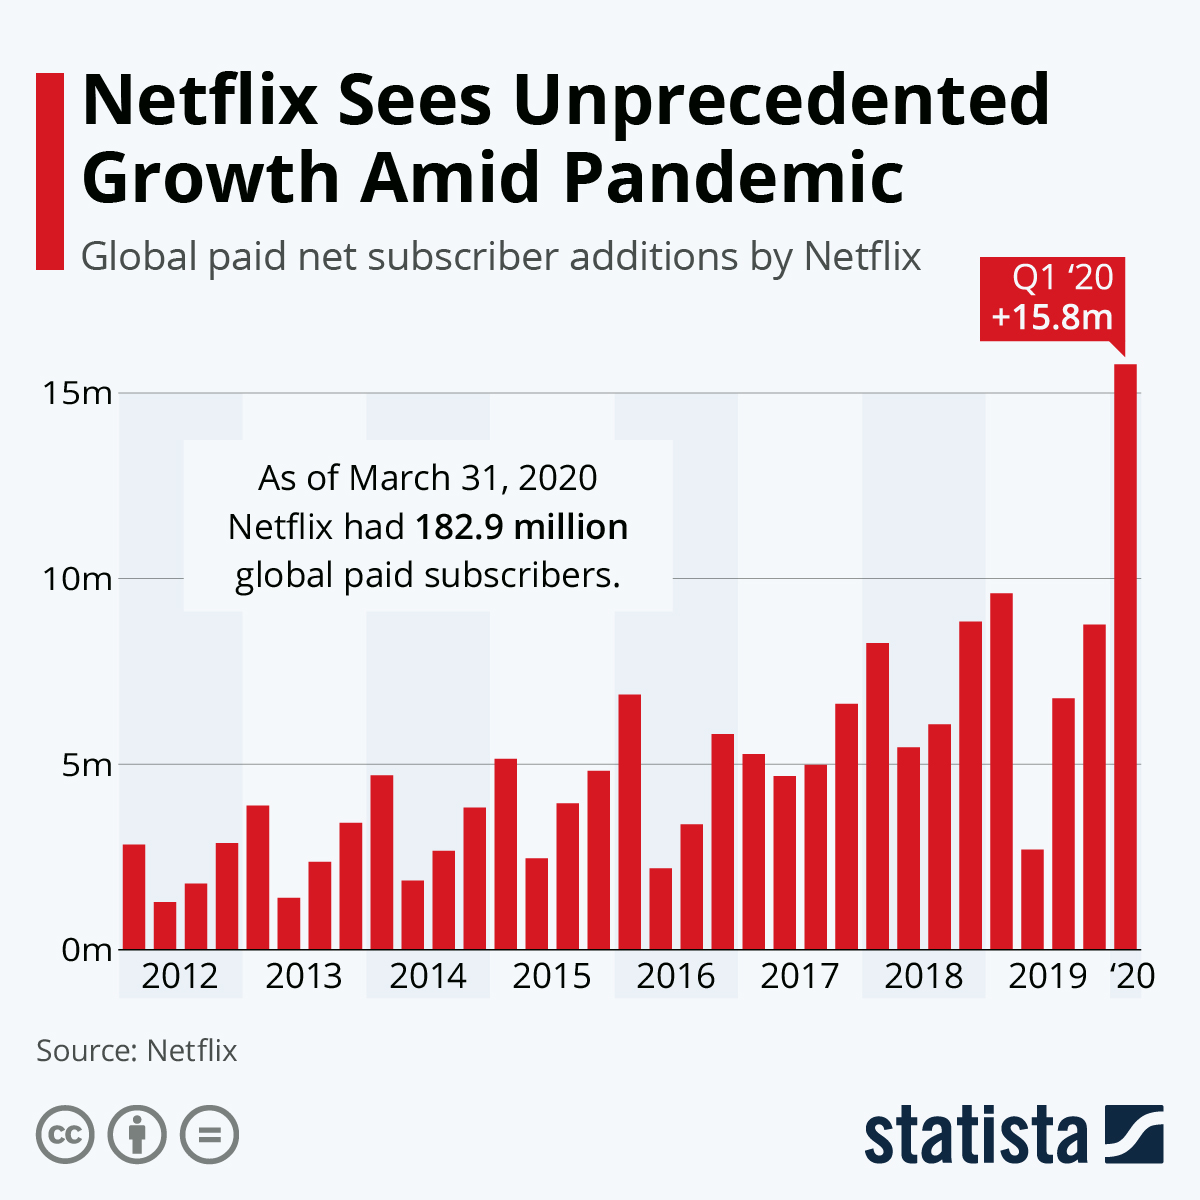 Who is watching Netflix amidst the pandemic? #Infographic